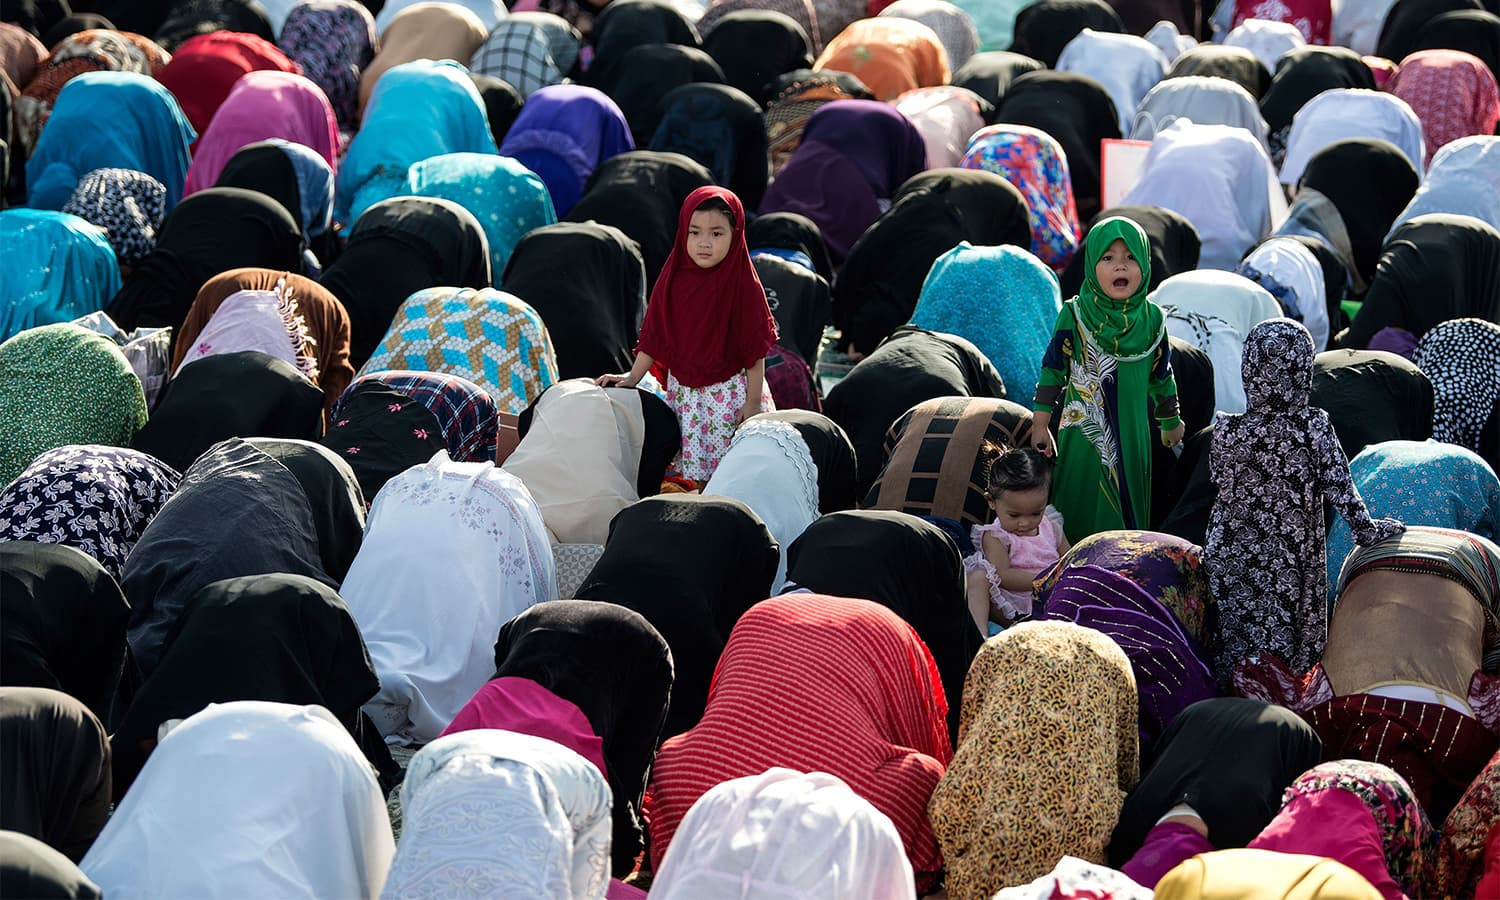 Girls looks on as worshippers gather to pray during Eidul Azha in Taguig, a suburb of Manila, Philippine.—AFP